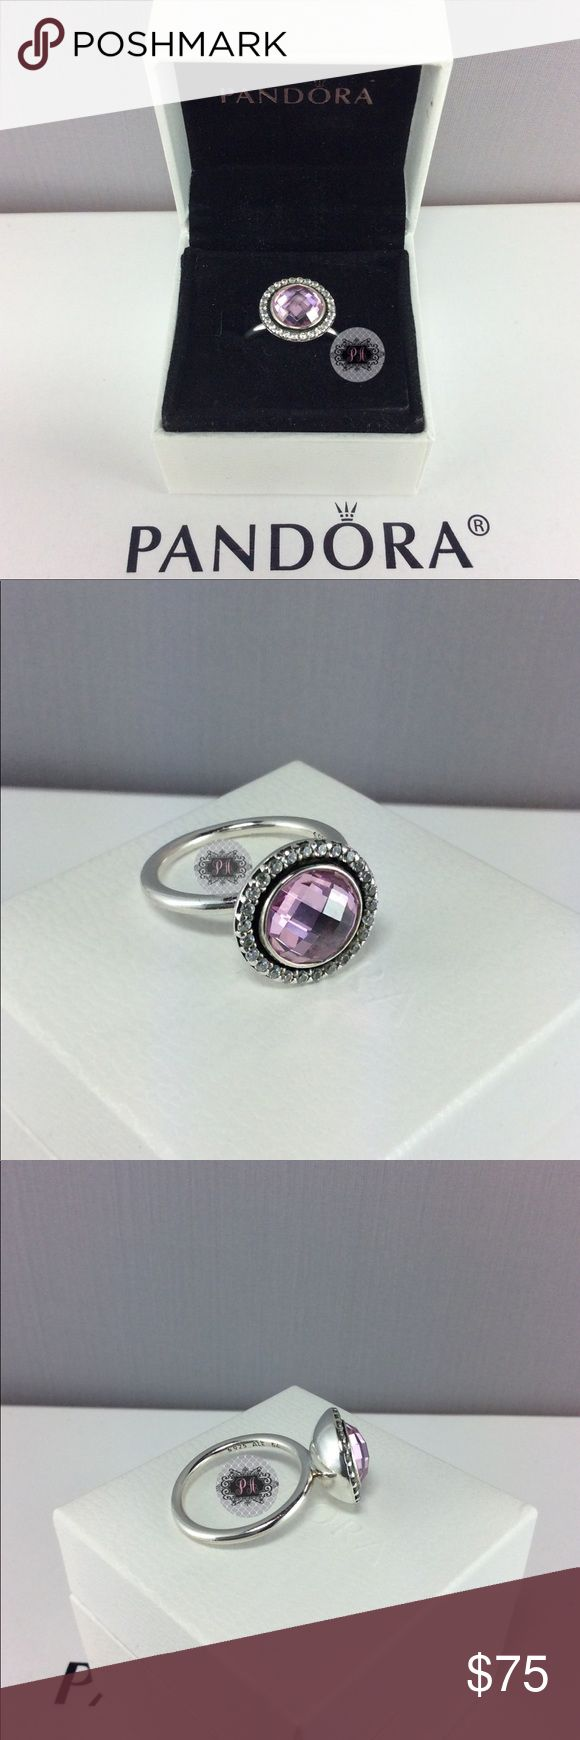 Pandora Brilliant Legacy Pink & Clear CZ Ring Authentic Pandora Brilliant Legacy Pink and Clear CZ Ring  Pandora Charms. Pandora New Charms. Pandora Retired Charms. Pandora Bracelets.  Signature markings Ale S925  Condition: Gently used   Retail: $115.00  🔵PRICE IS FIRM UNLESS BUNDLED  ⚫️NOT ACCEPTING LOWBALL OFFERS!!! 📦BOX INCLUDED IN THE SALE Pandora Jewelry Rings